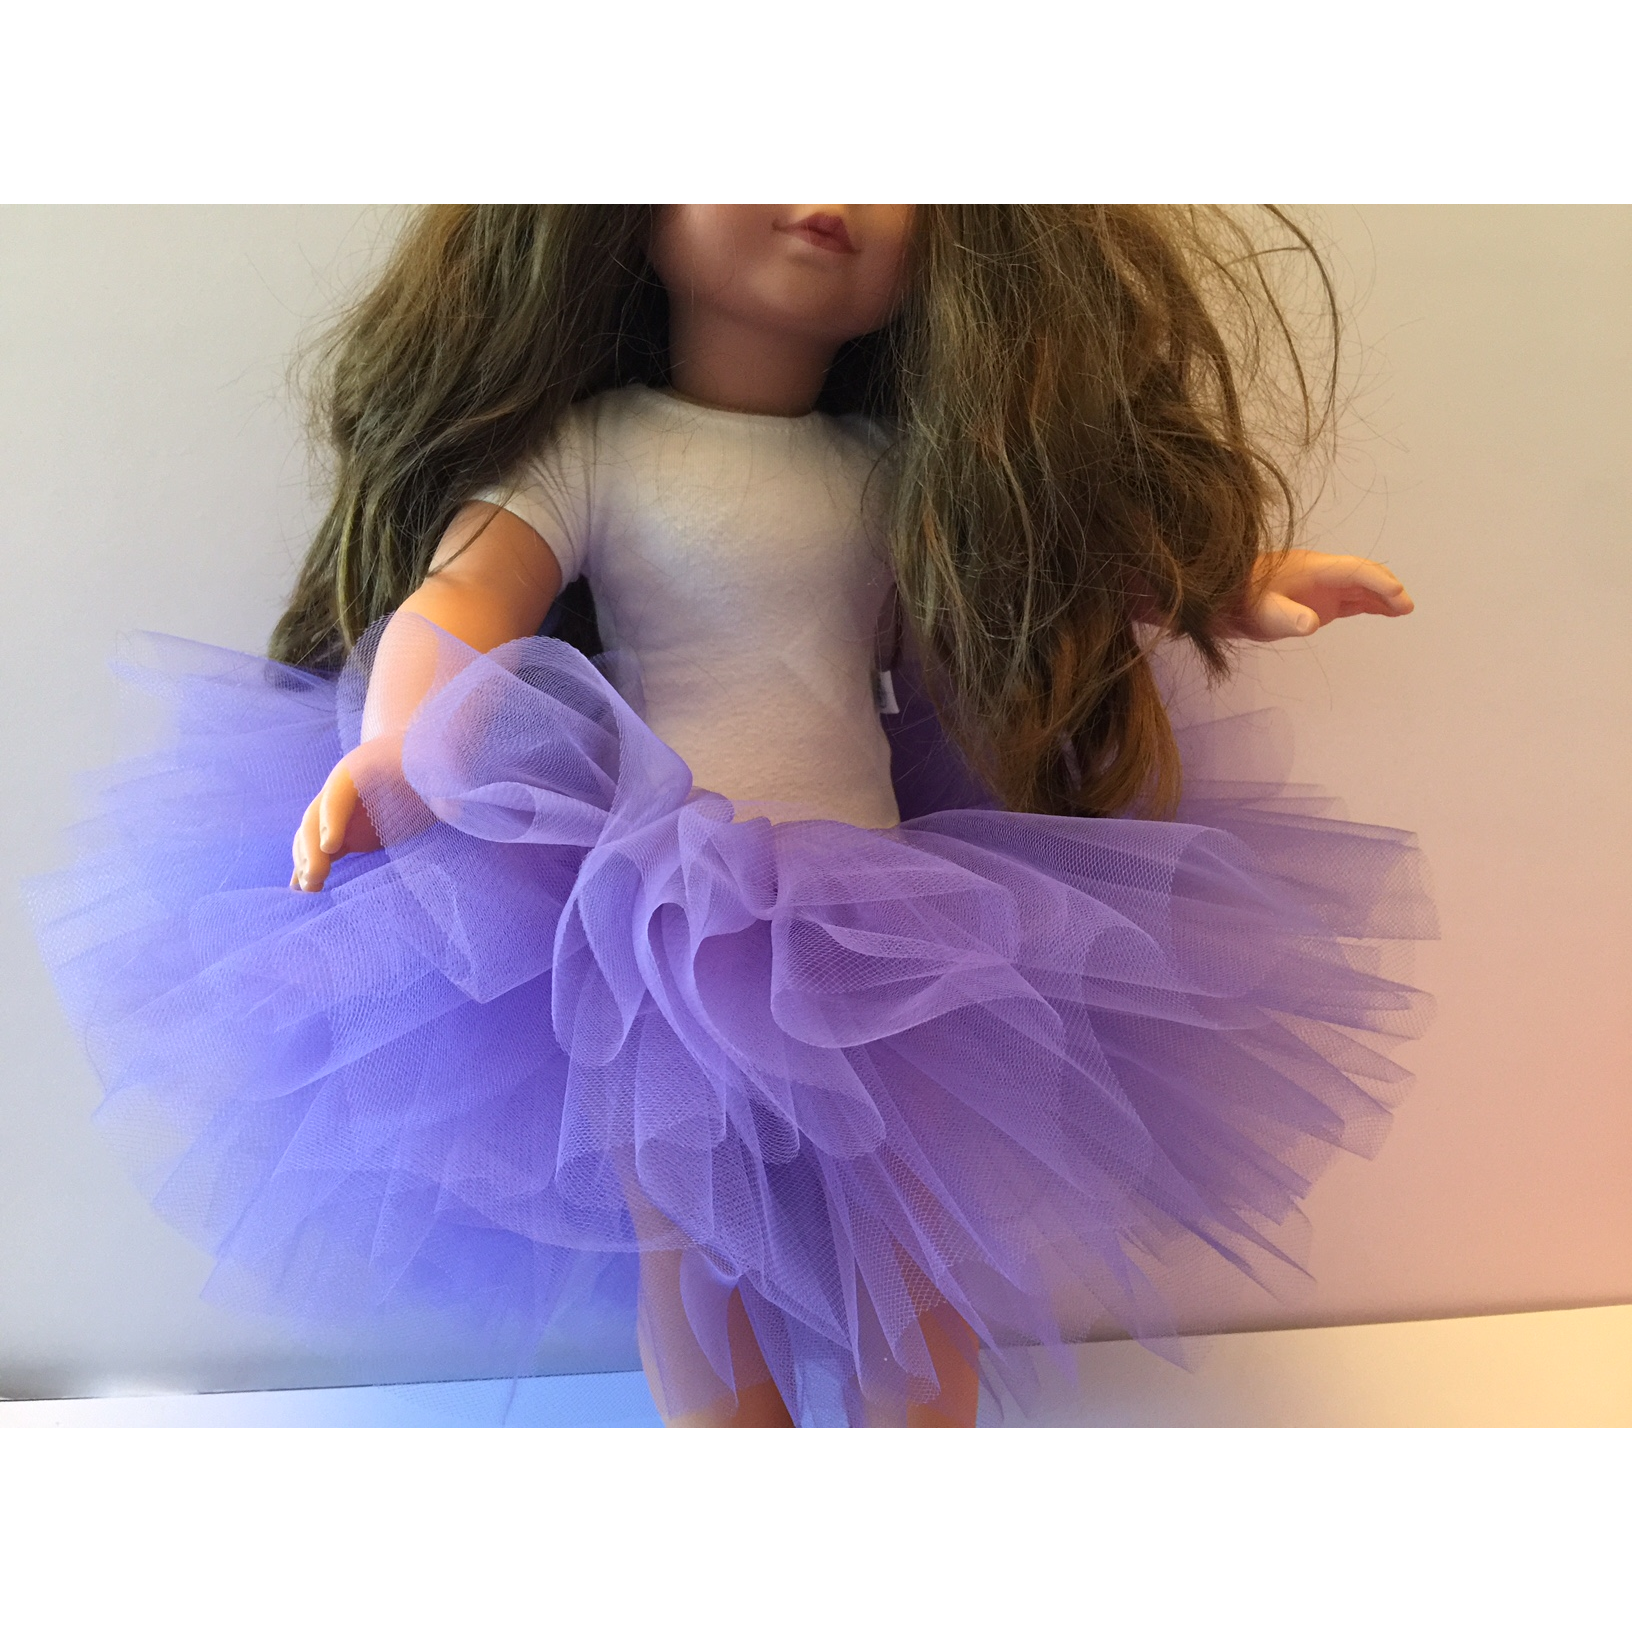 Matching Tutus for your Favorite Dolls - SELECT YOUR COLOR